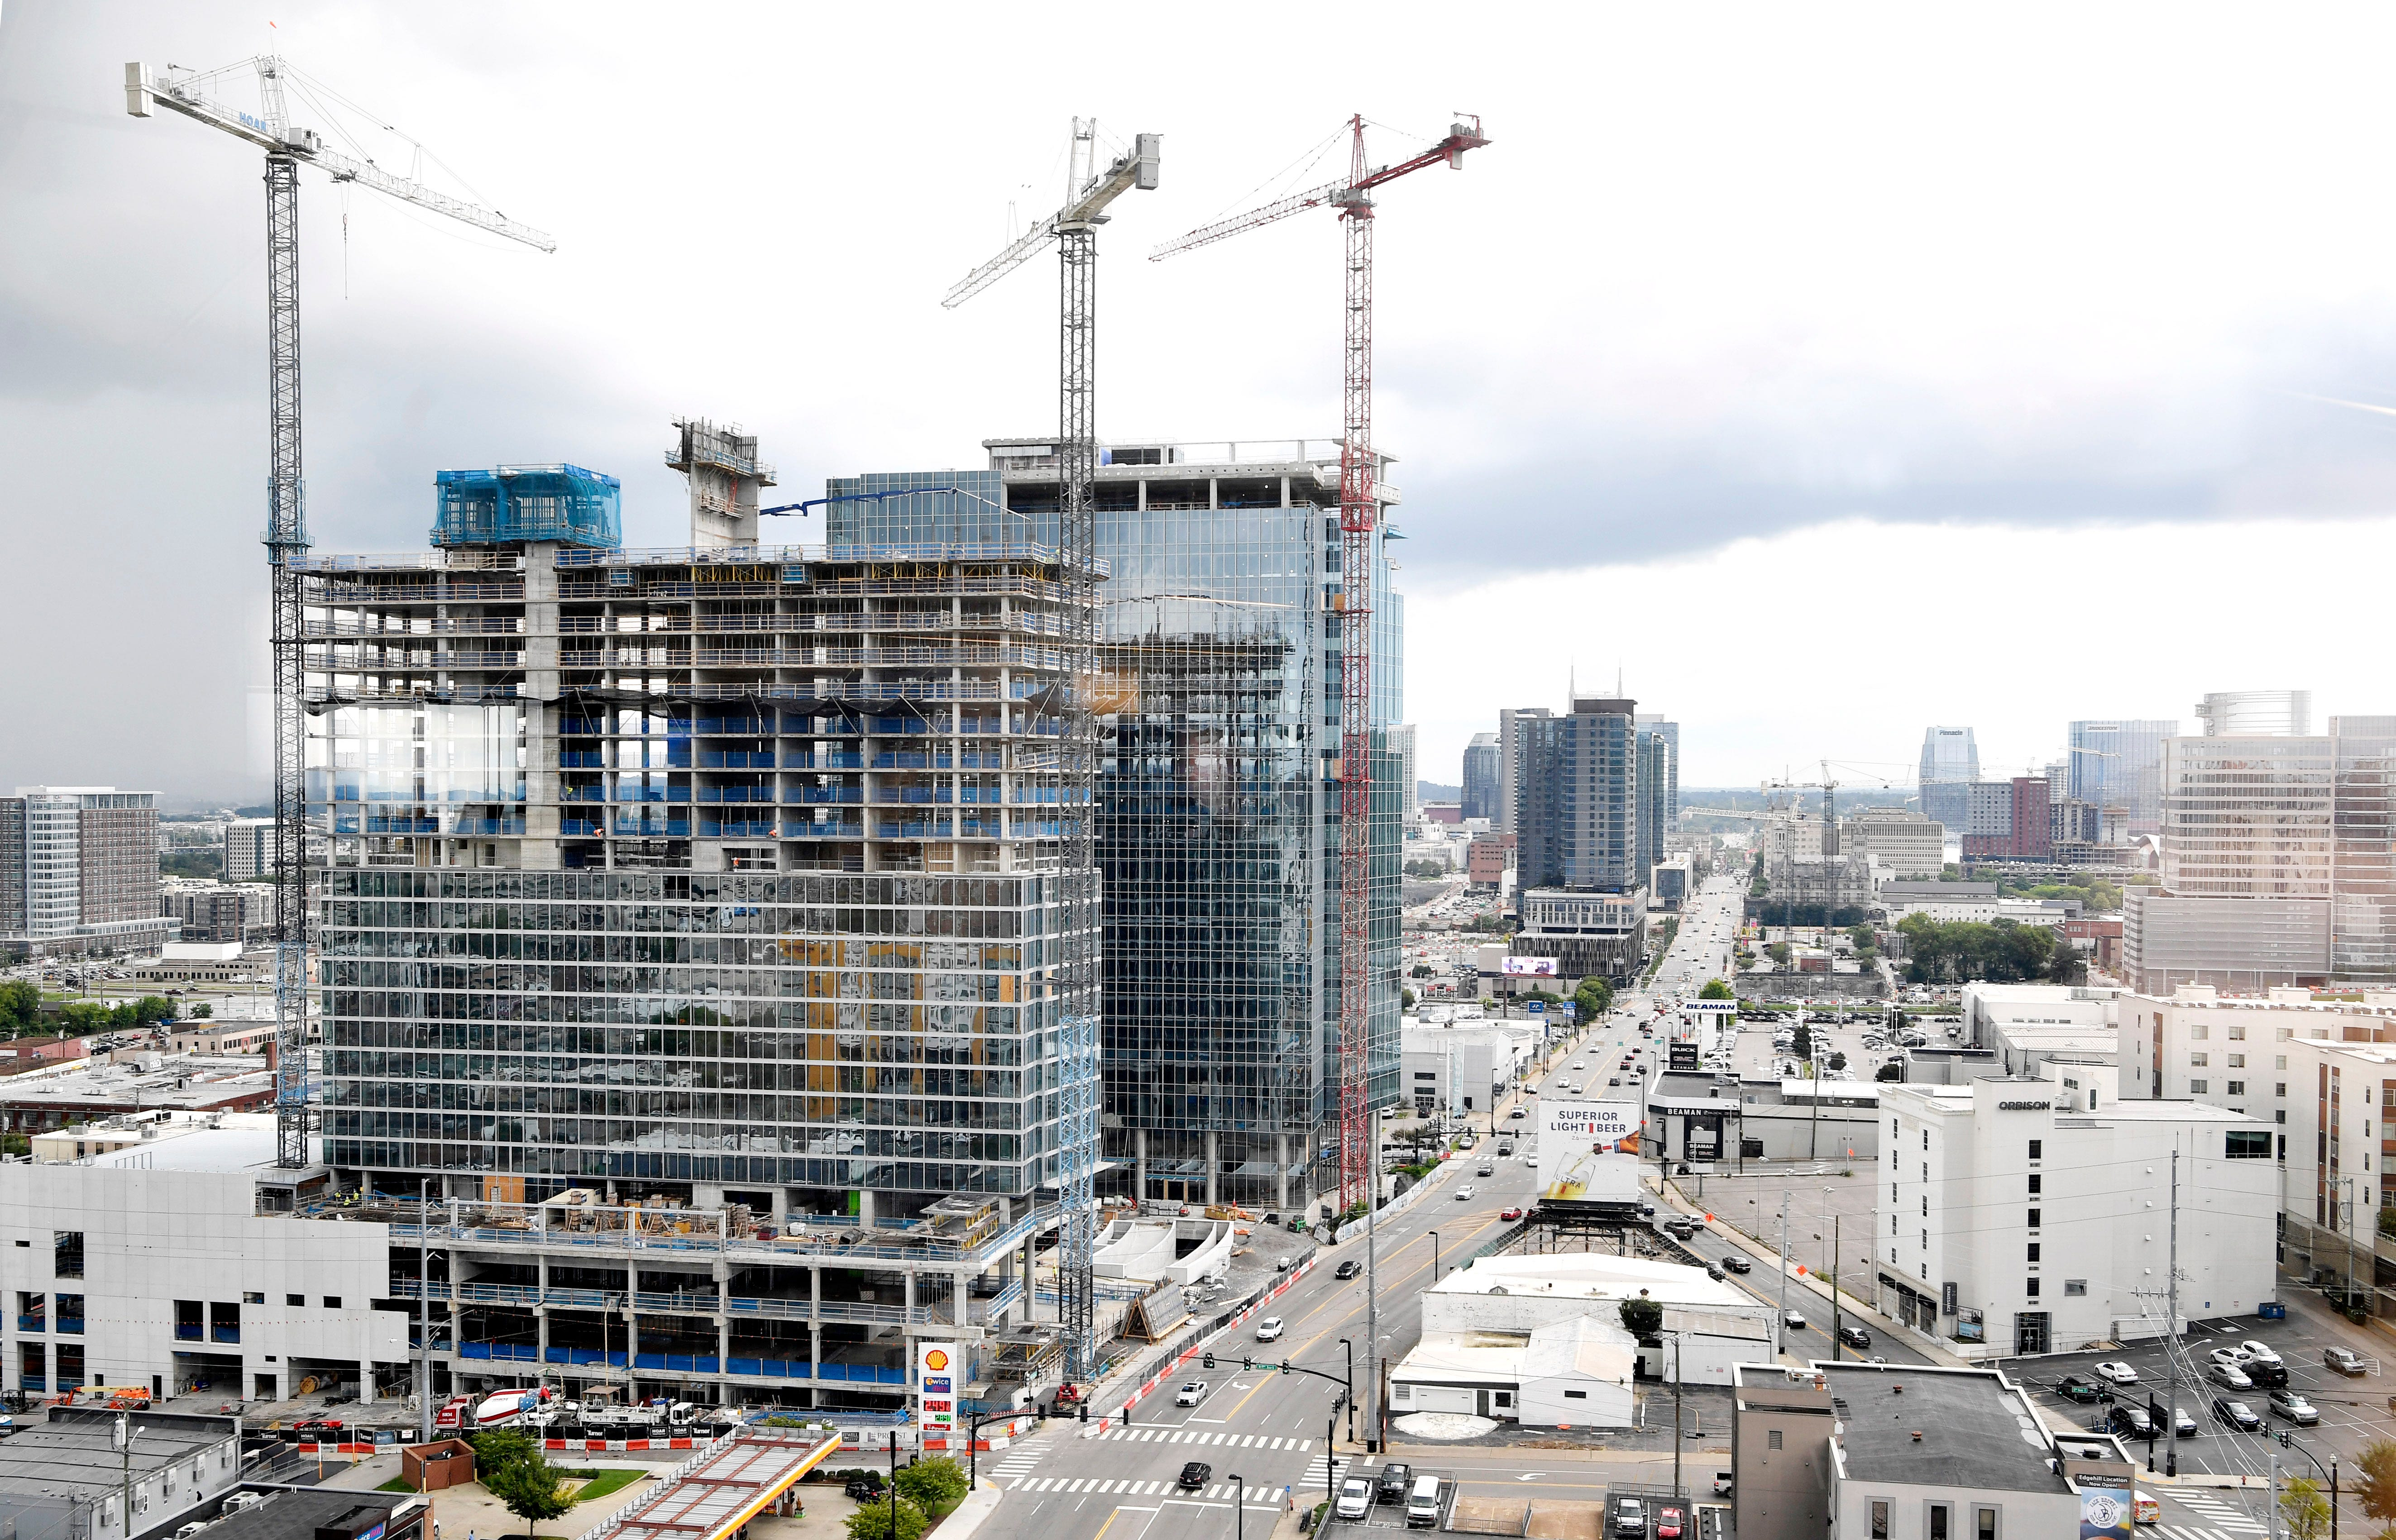 The Broadwest construction project, seen here in an Aug. 31 photo, was the site of a 34-person coronavirus cluster in June. This cluster was linked to several others in the city.